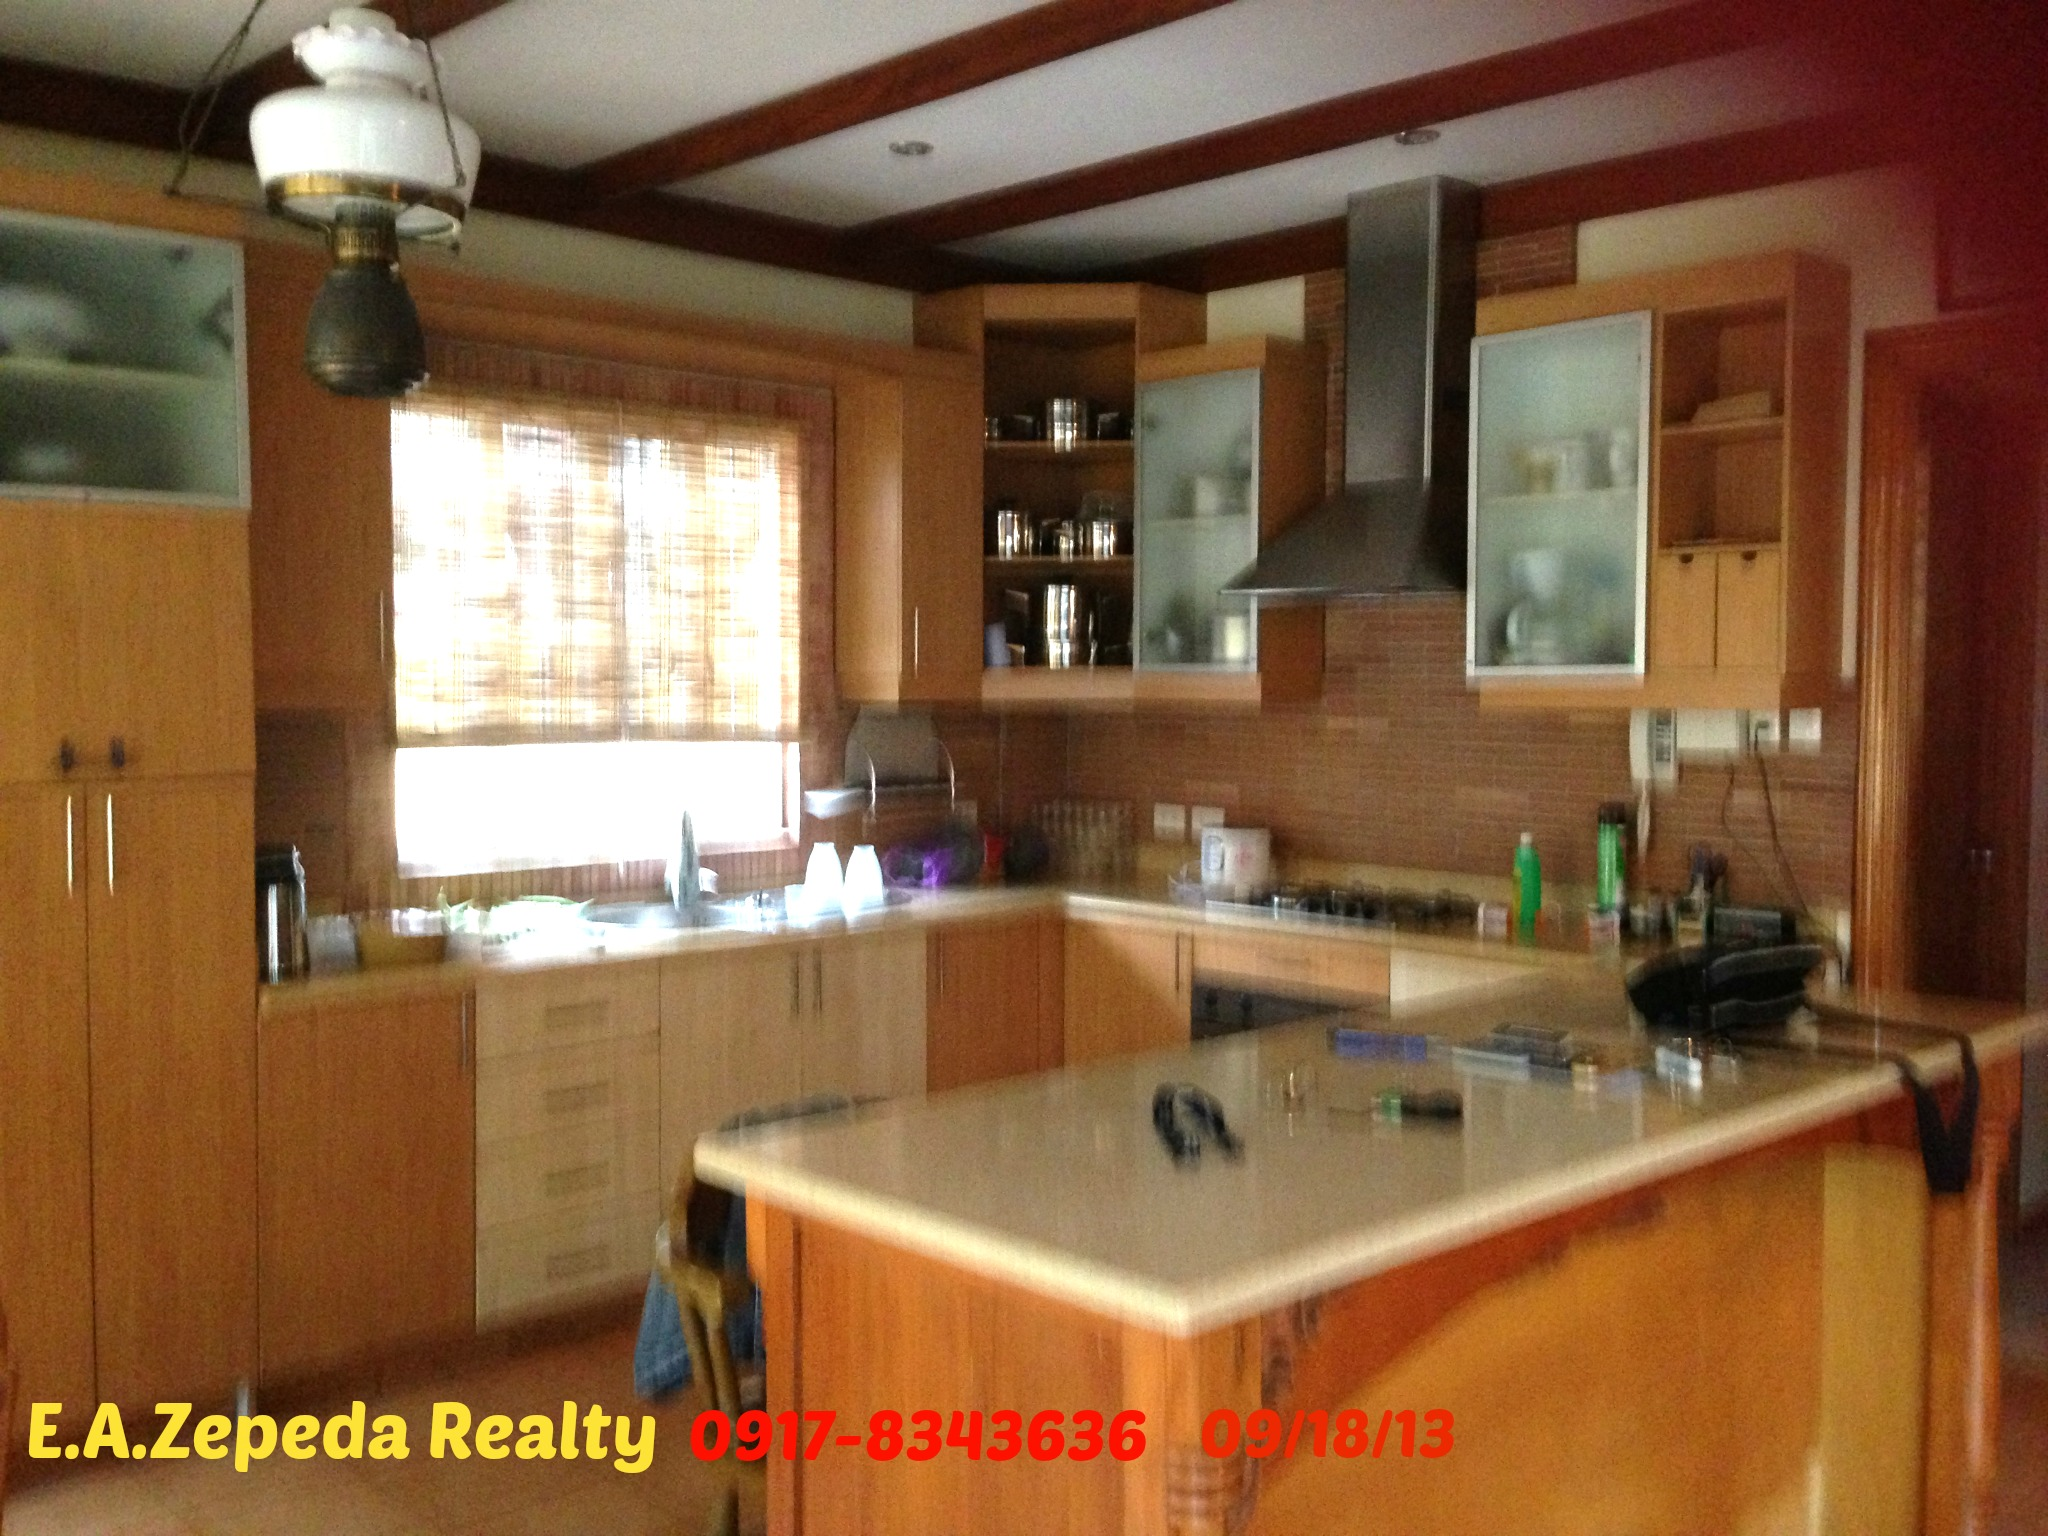 FOR SALE: House Manila Metropolitan Area > Paranaque 28